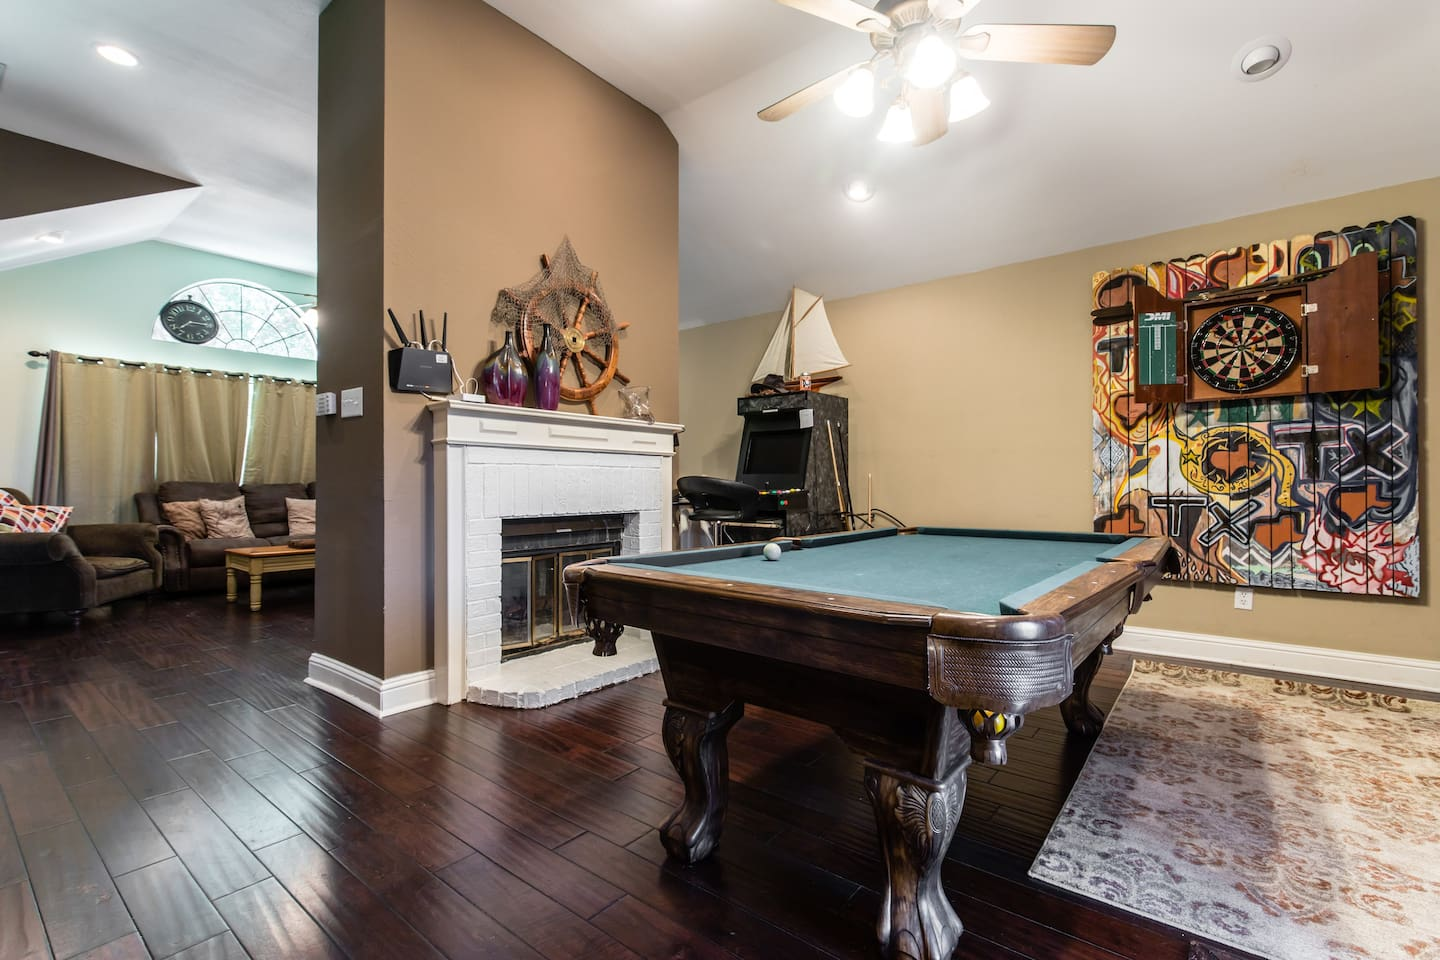 Family Fun Games Pool Table Foosball Table Houses For Rent In - Foosball table houston